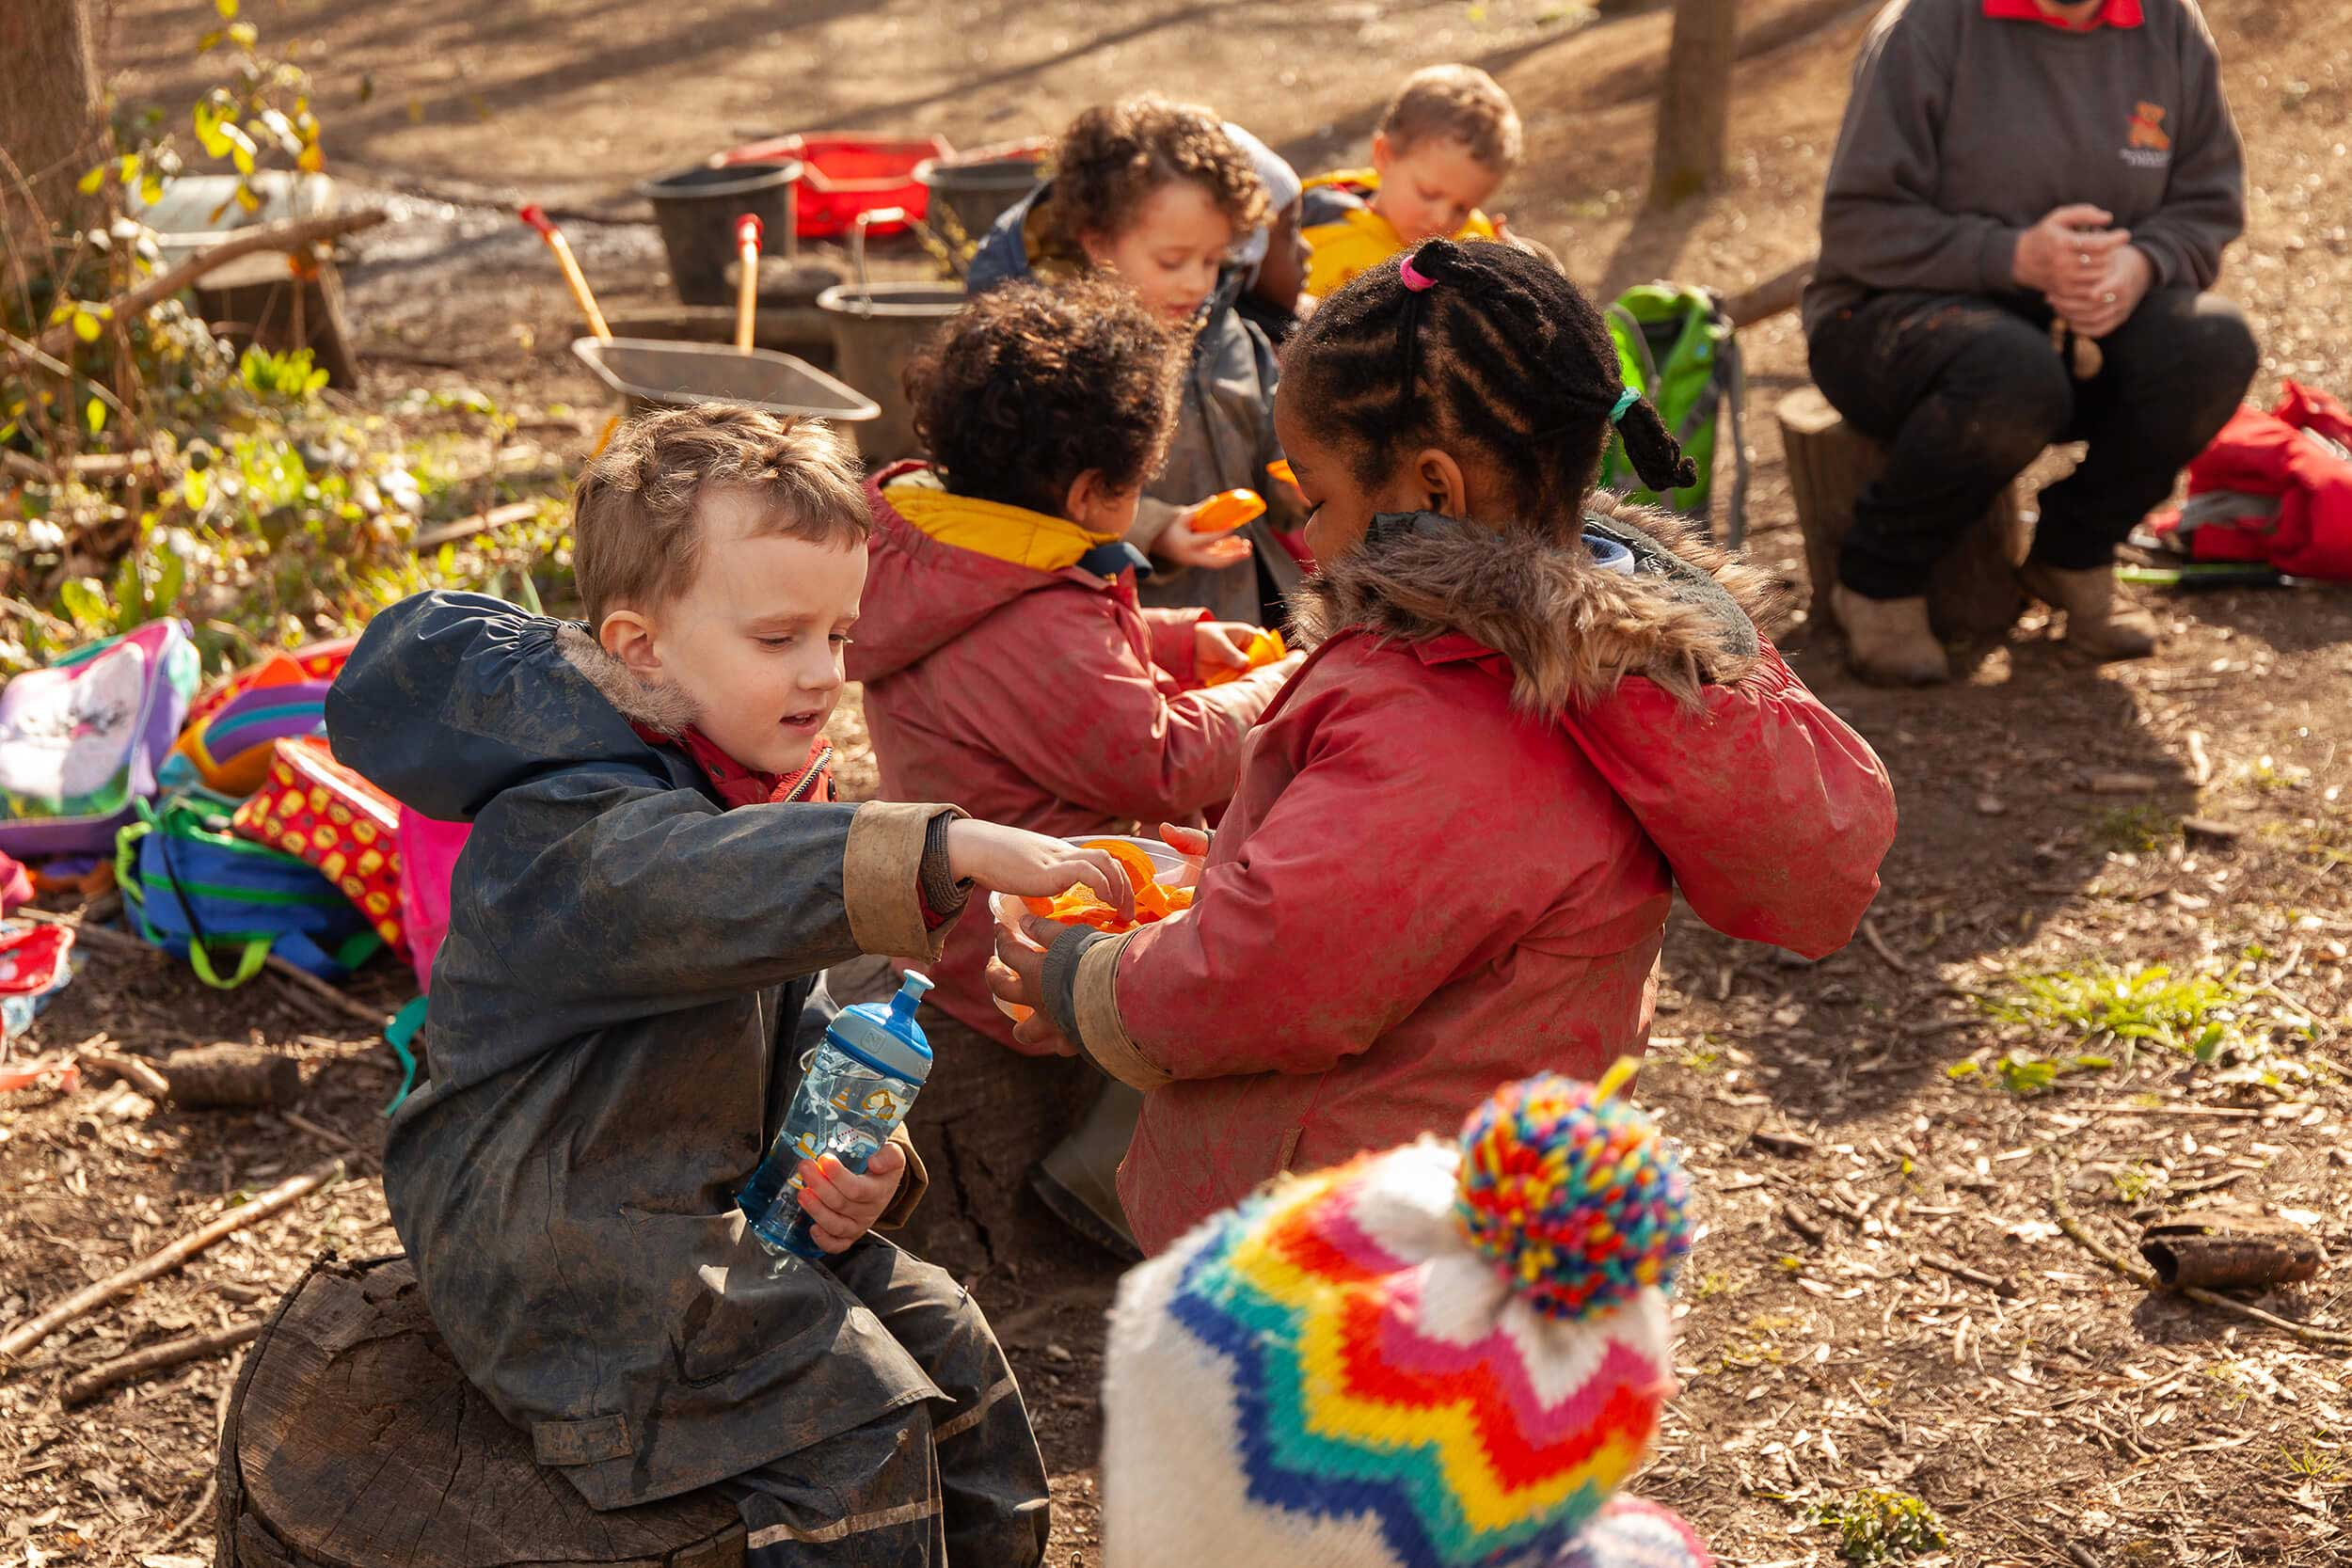 Group of children eating lunch in the forest